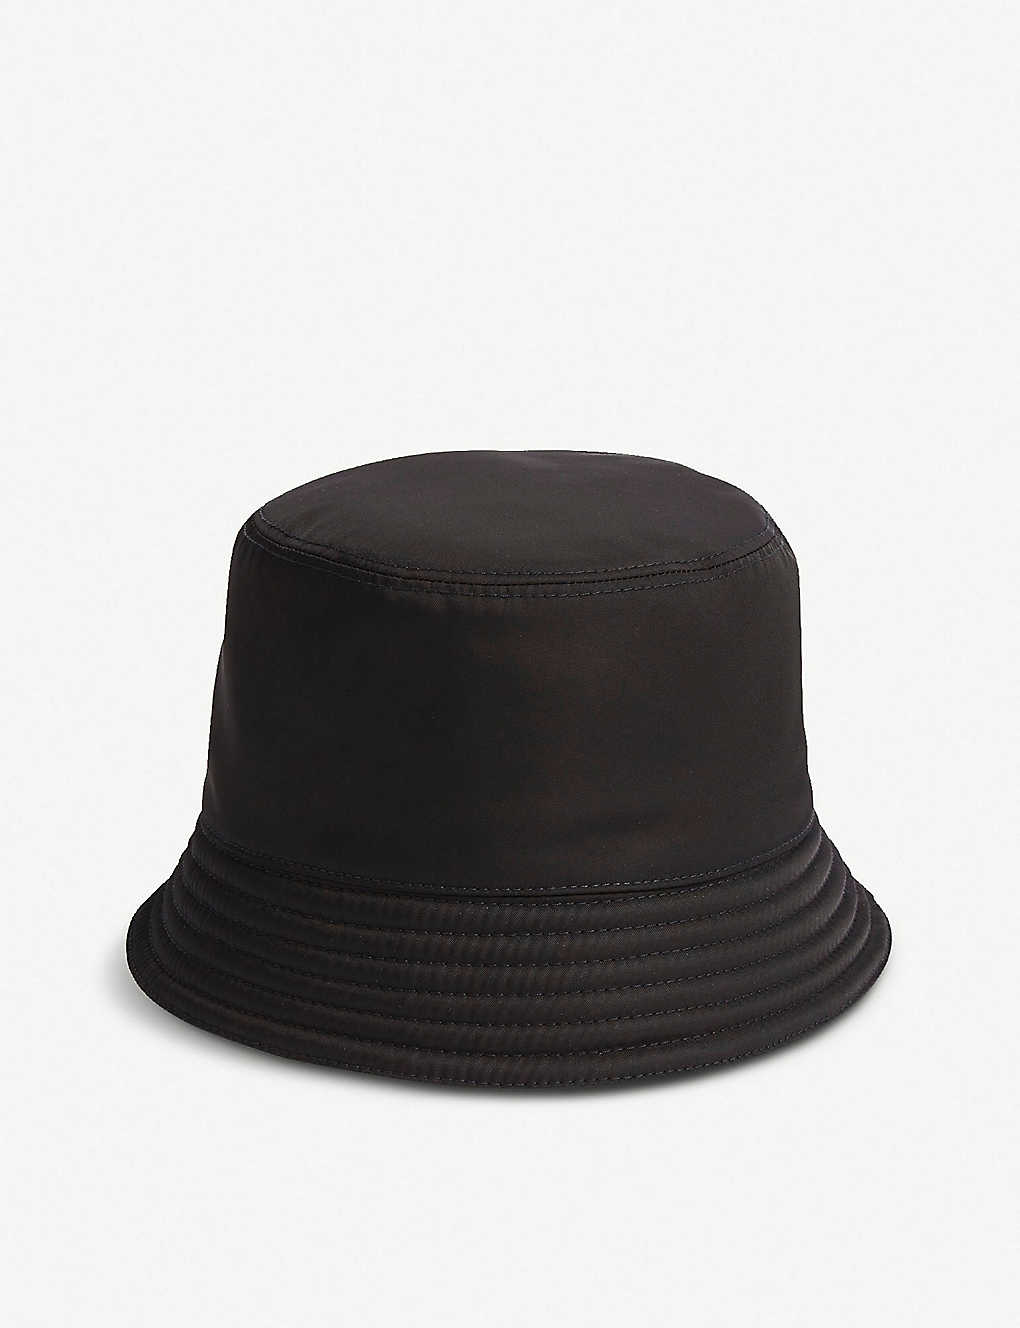 84d97b2c91c7e PRADA - Logo-plaque nylon bucket hat